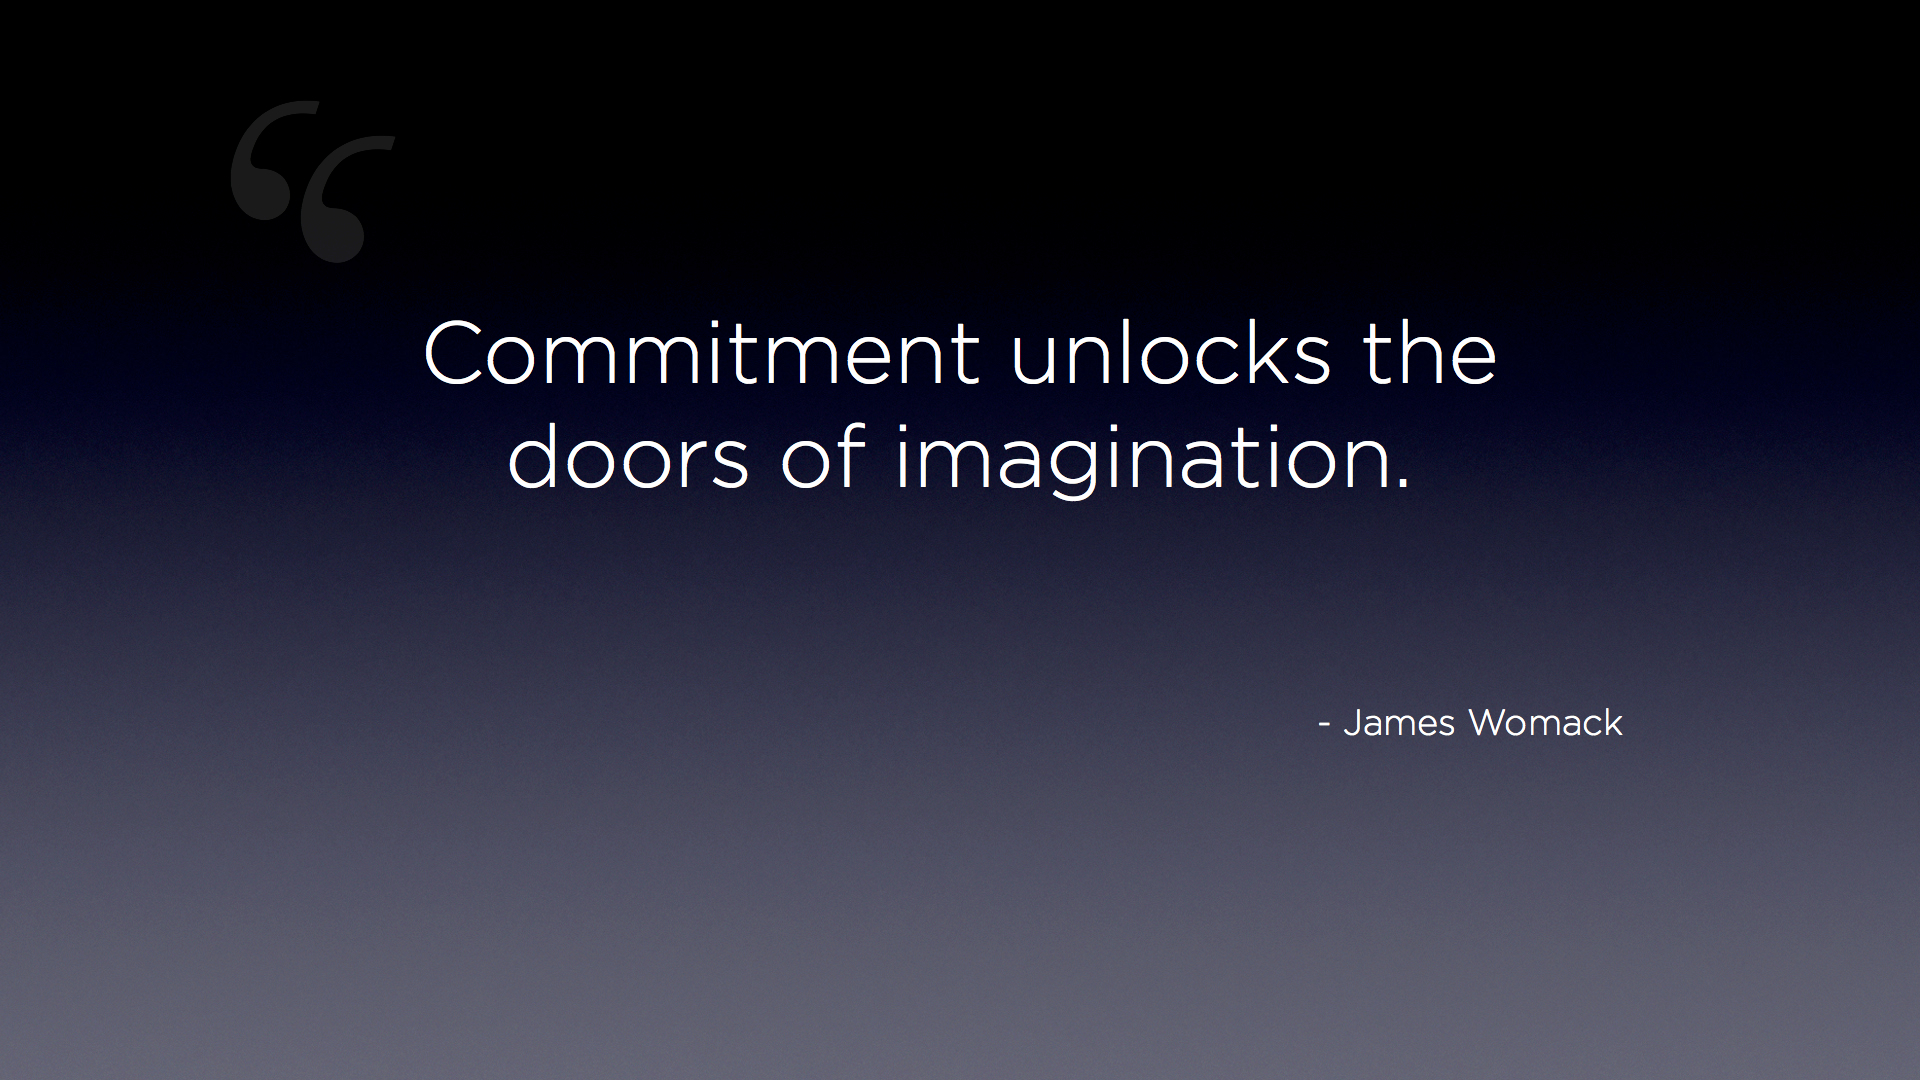 Commitment unlocks the doors of imagination. James Womack